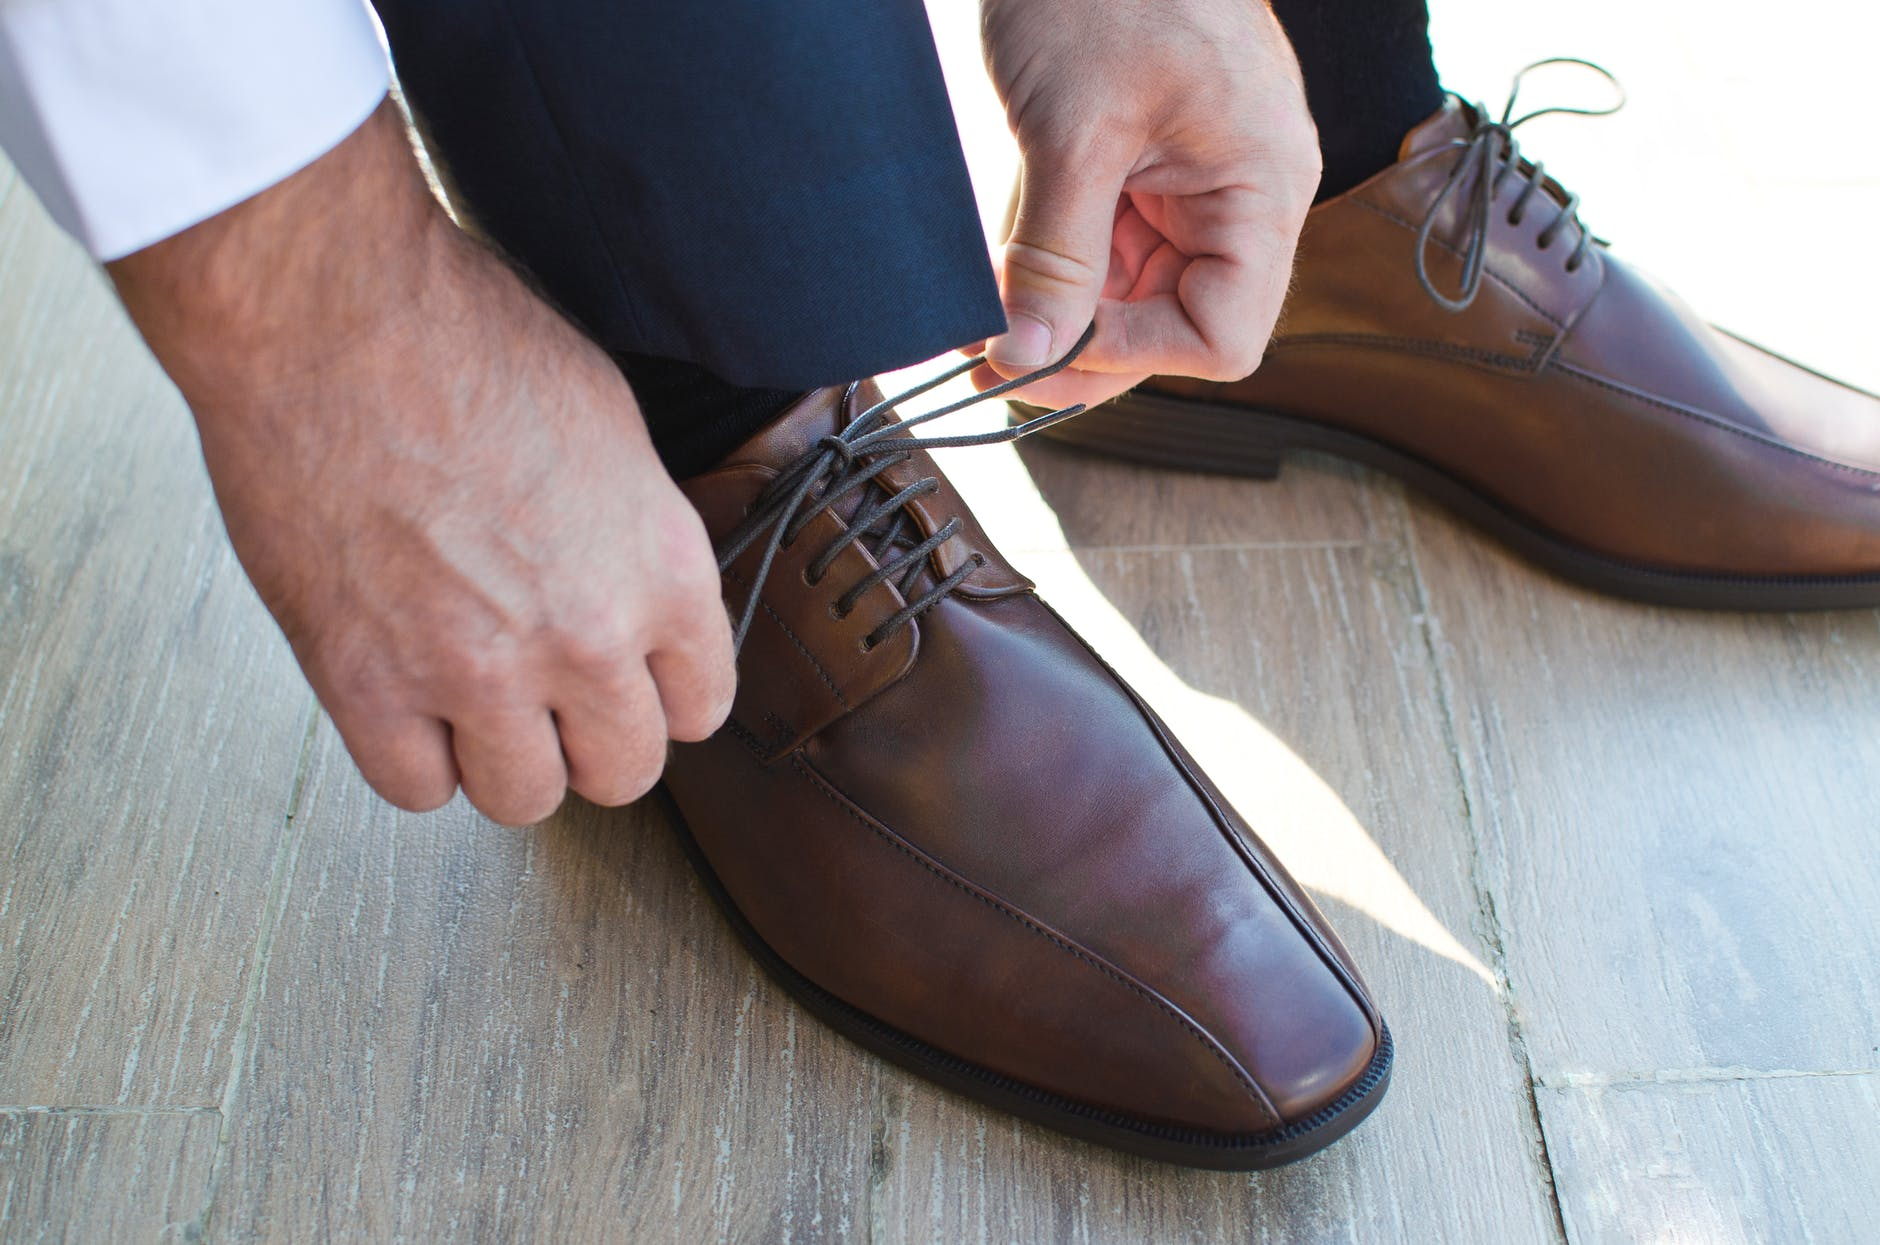 Long-Handled Wooden Shoe Horn with Loop Shoehorn for Boots Sneaker and Shoe